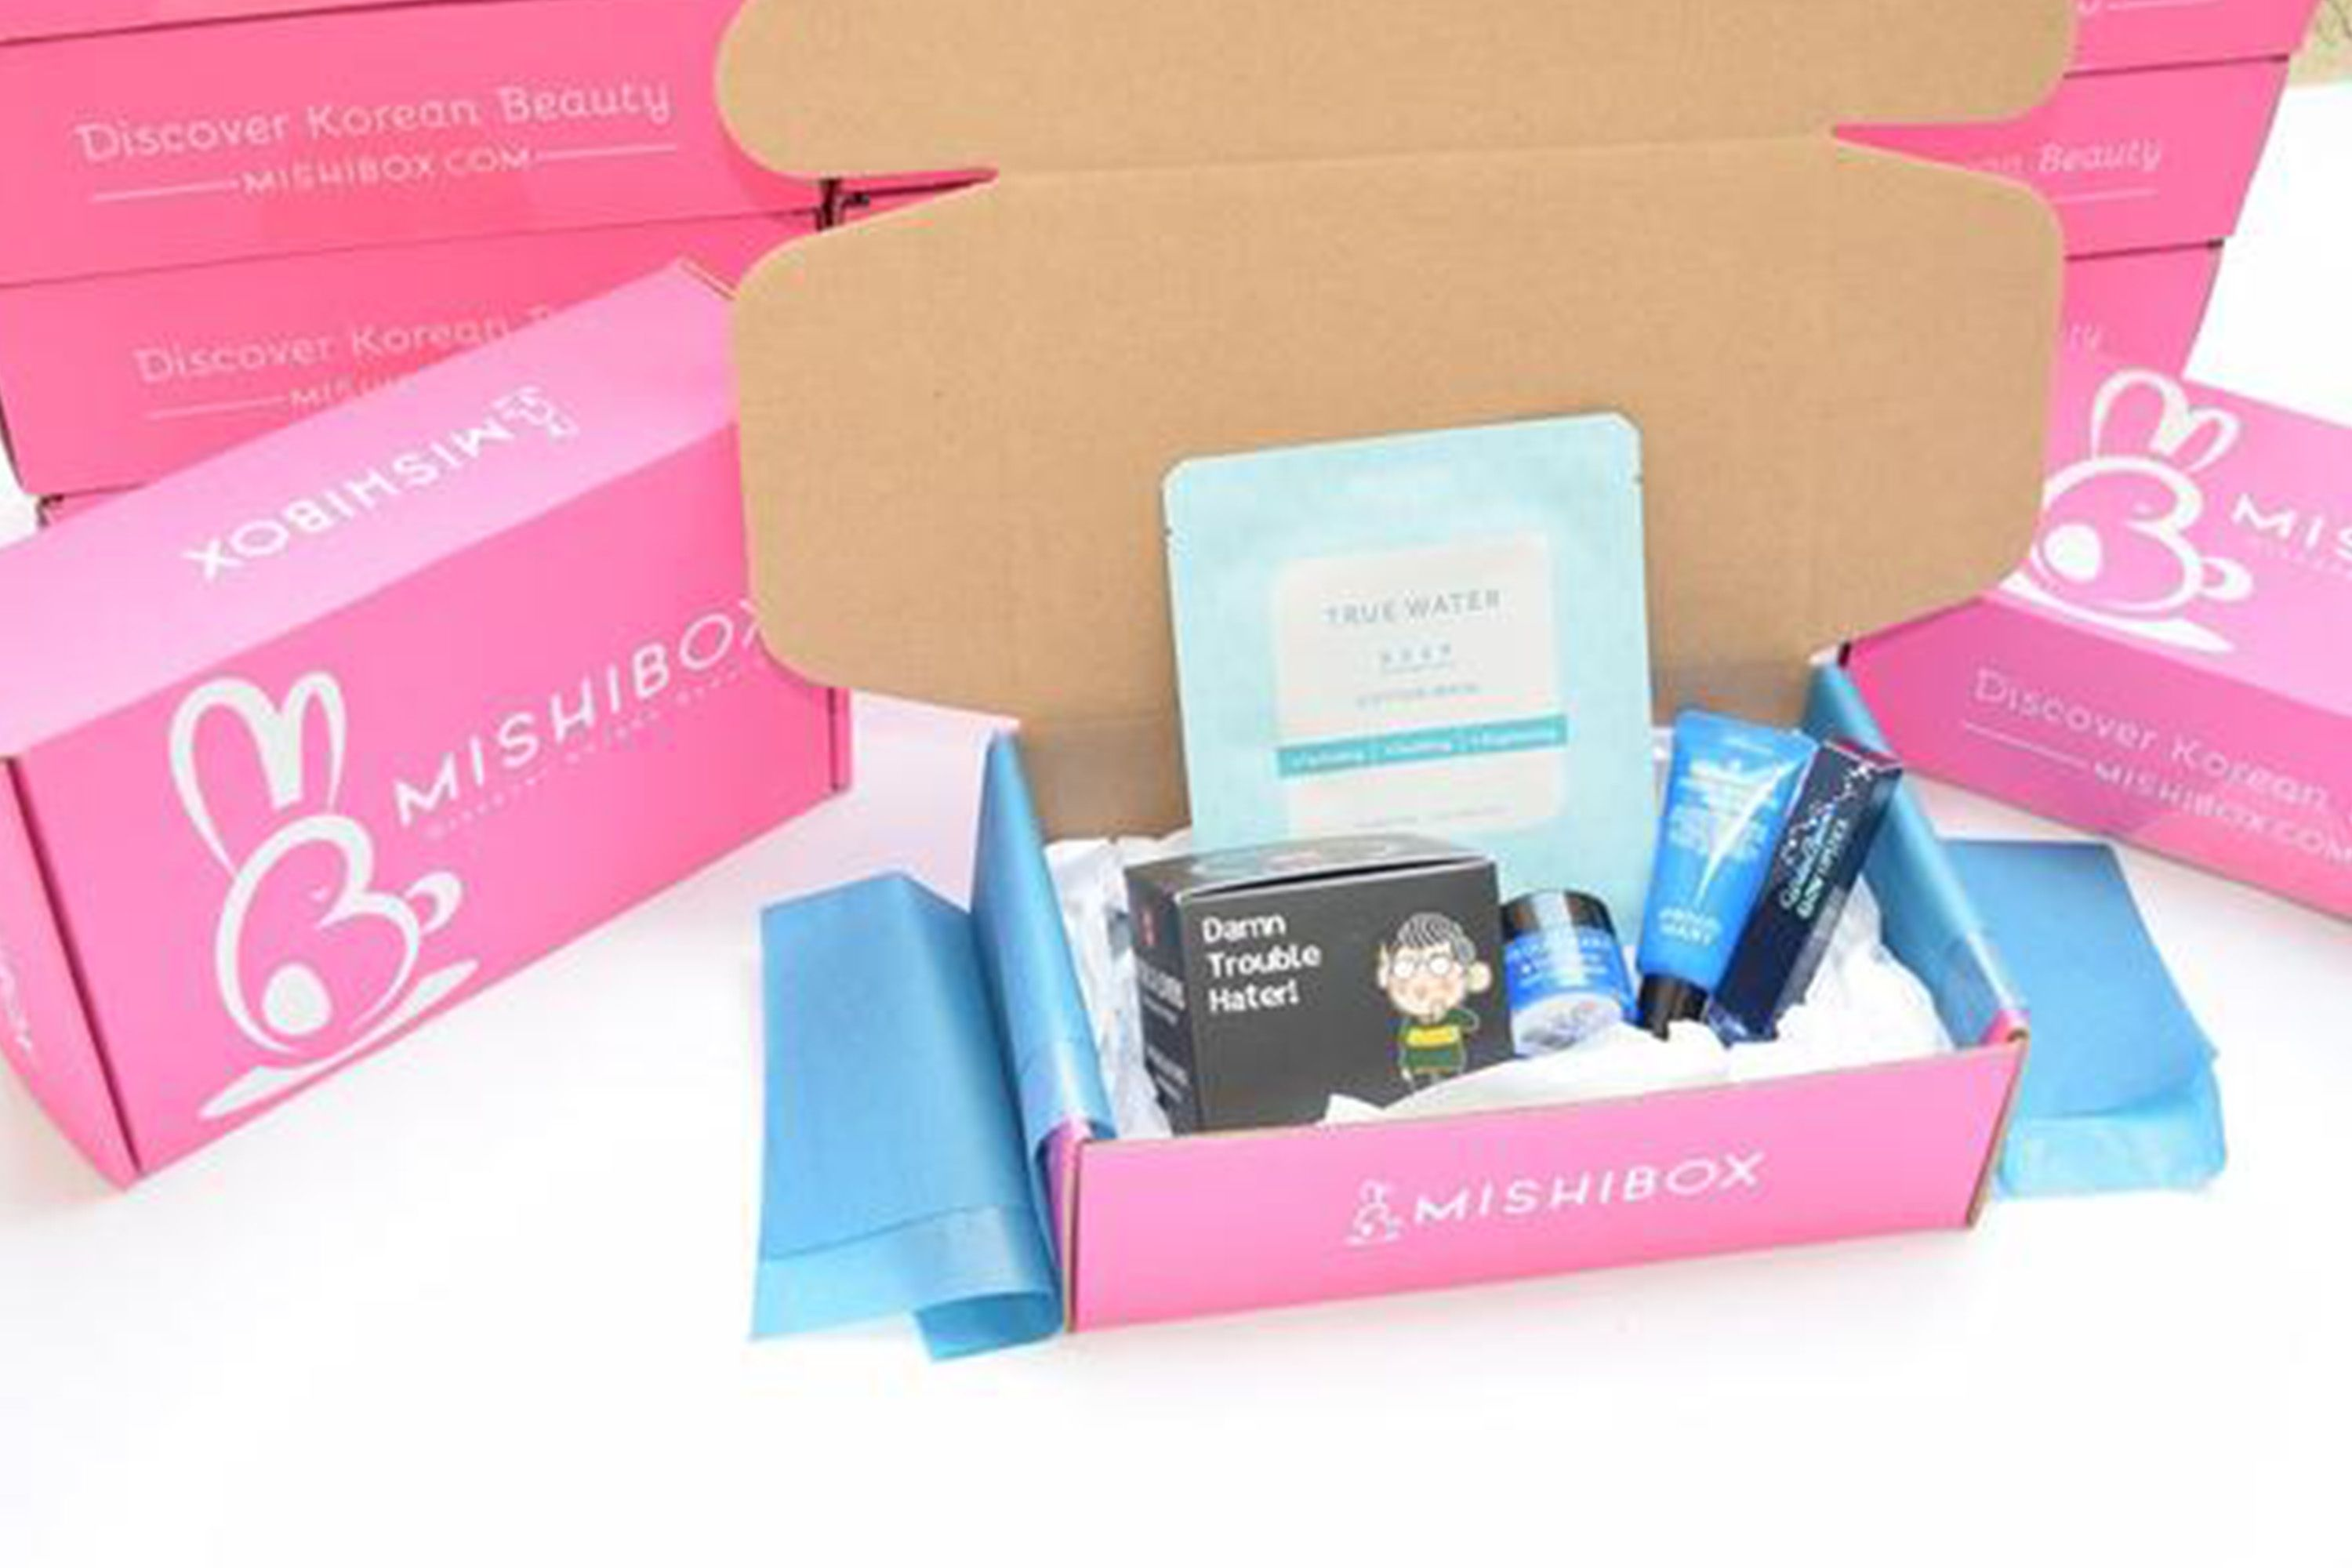 aa827692f 22 Best Makeup Subscription Boxes - Top Beauty Subscription Gifts